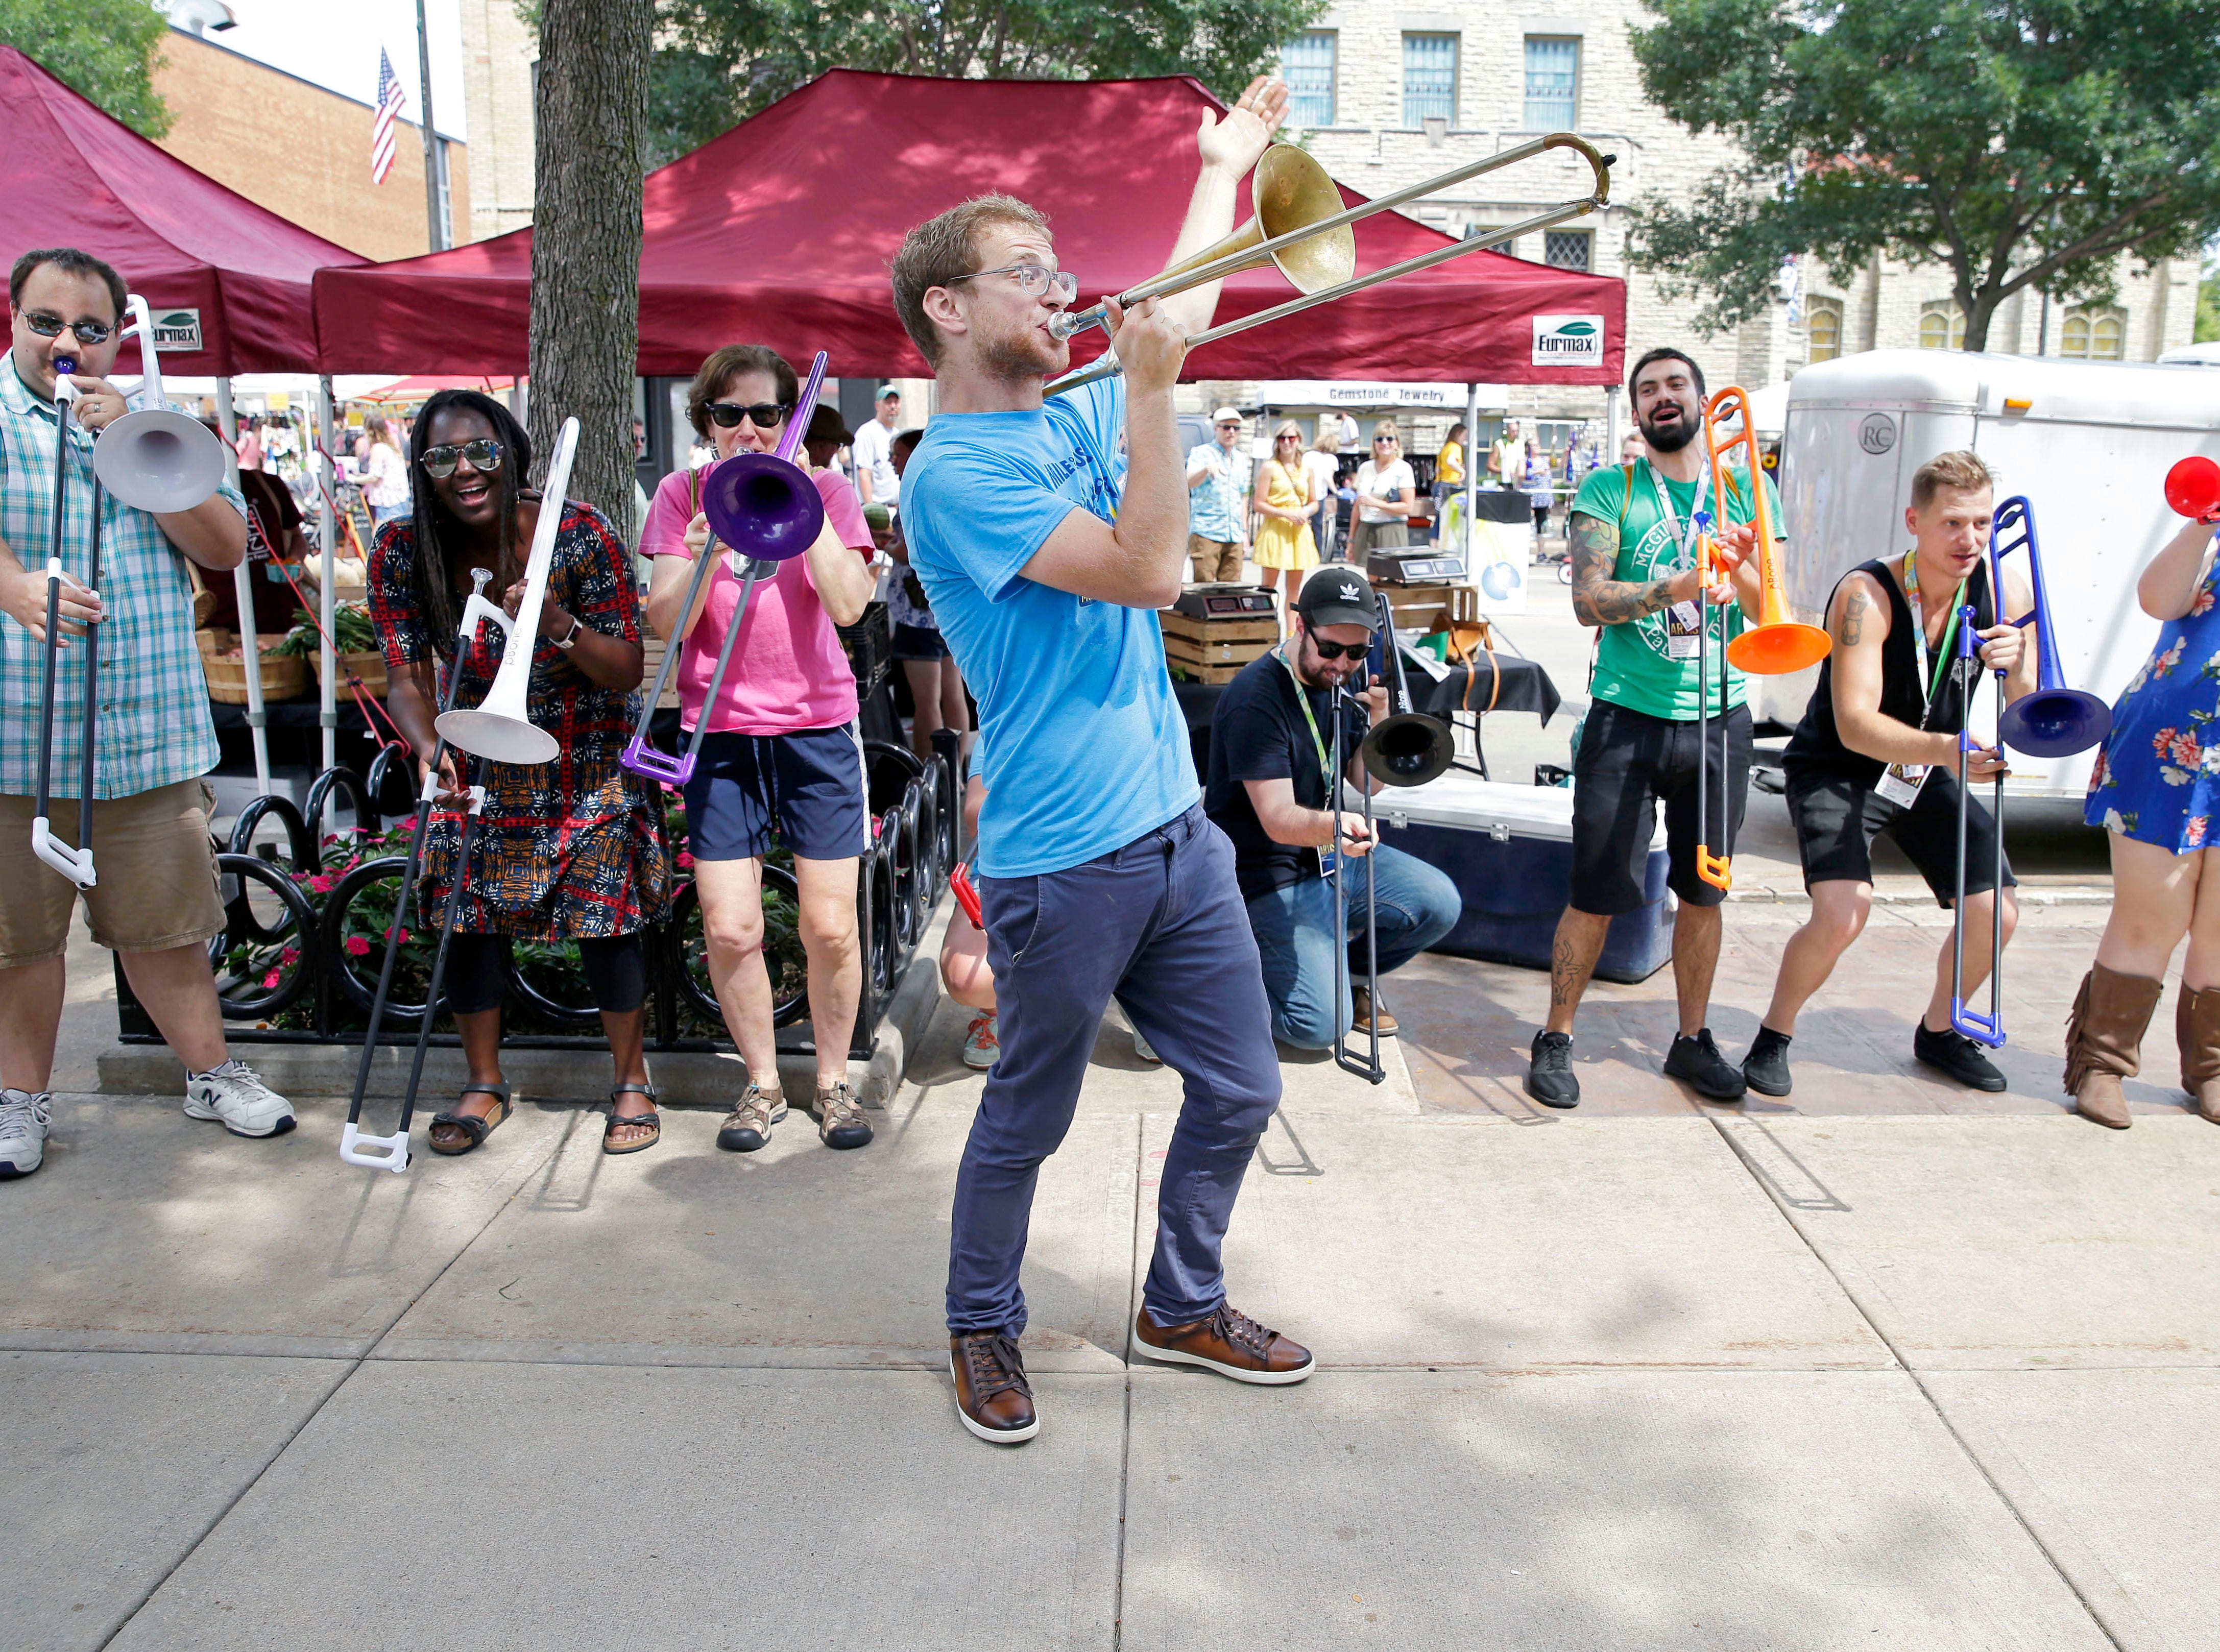 Ilan Blanck of Porky's Groove Machine directs a horn section of trainees during the Funk Band Jam as Mile 6, the Mile of Music festival takes place Saturday, August 4, 2018, in Appleton, Wis.